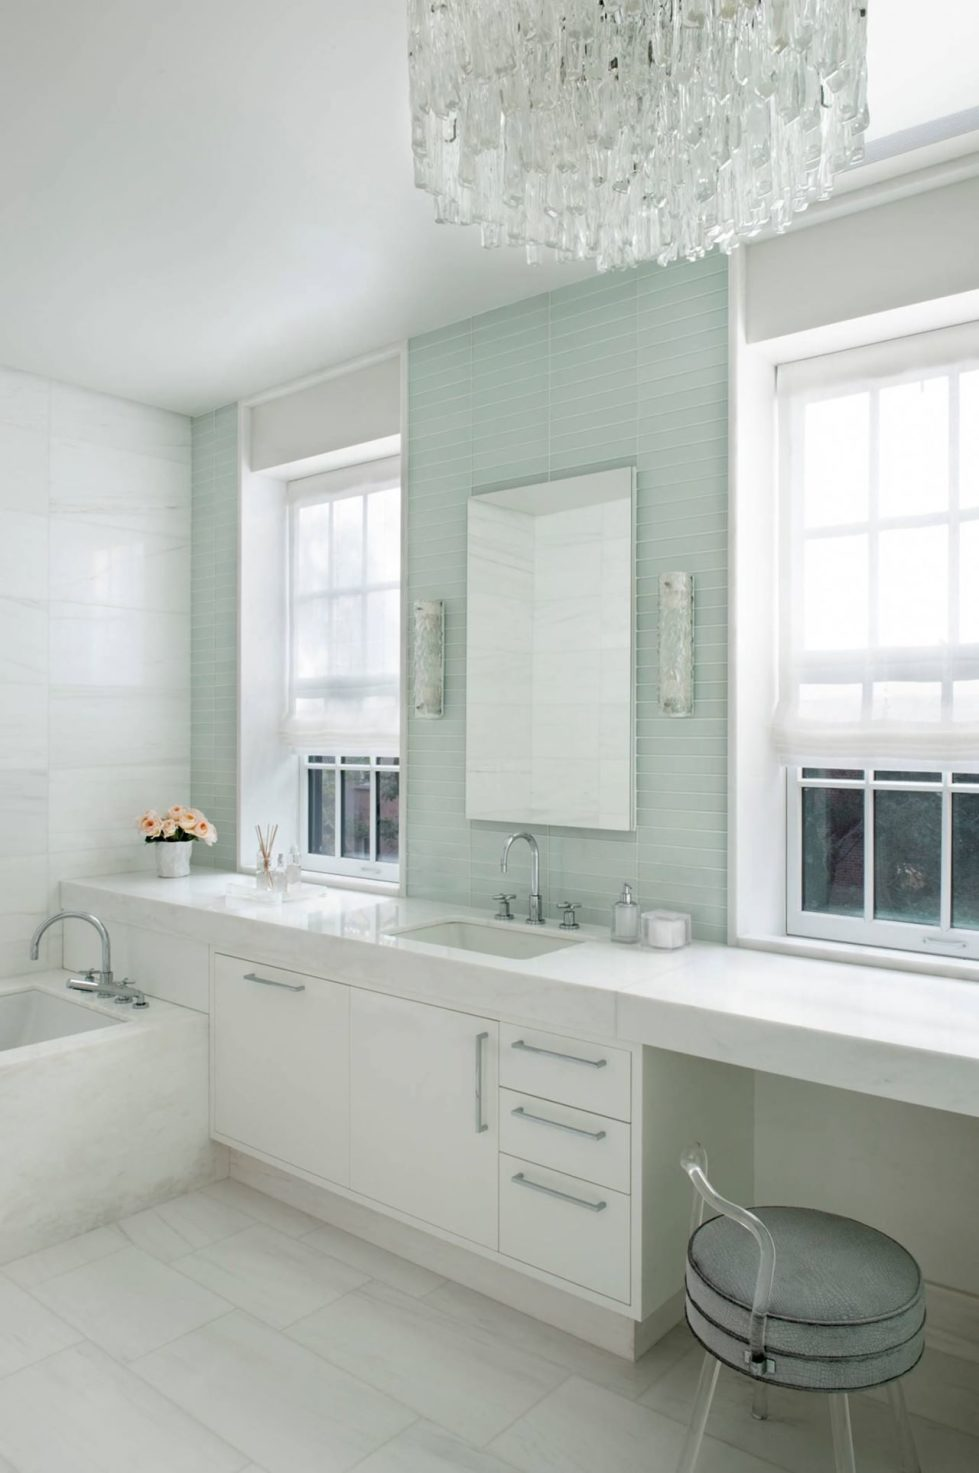 New York townhouse in a mixed style - bathroom 2